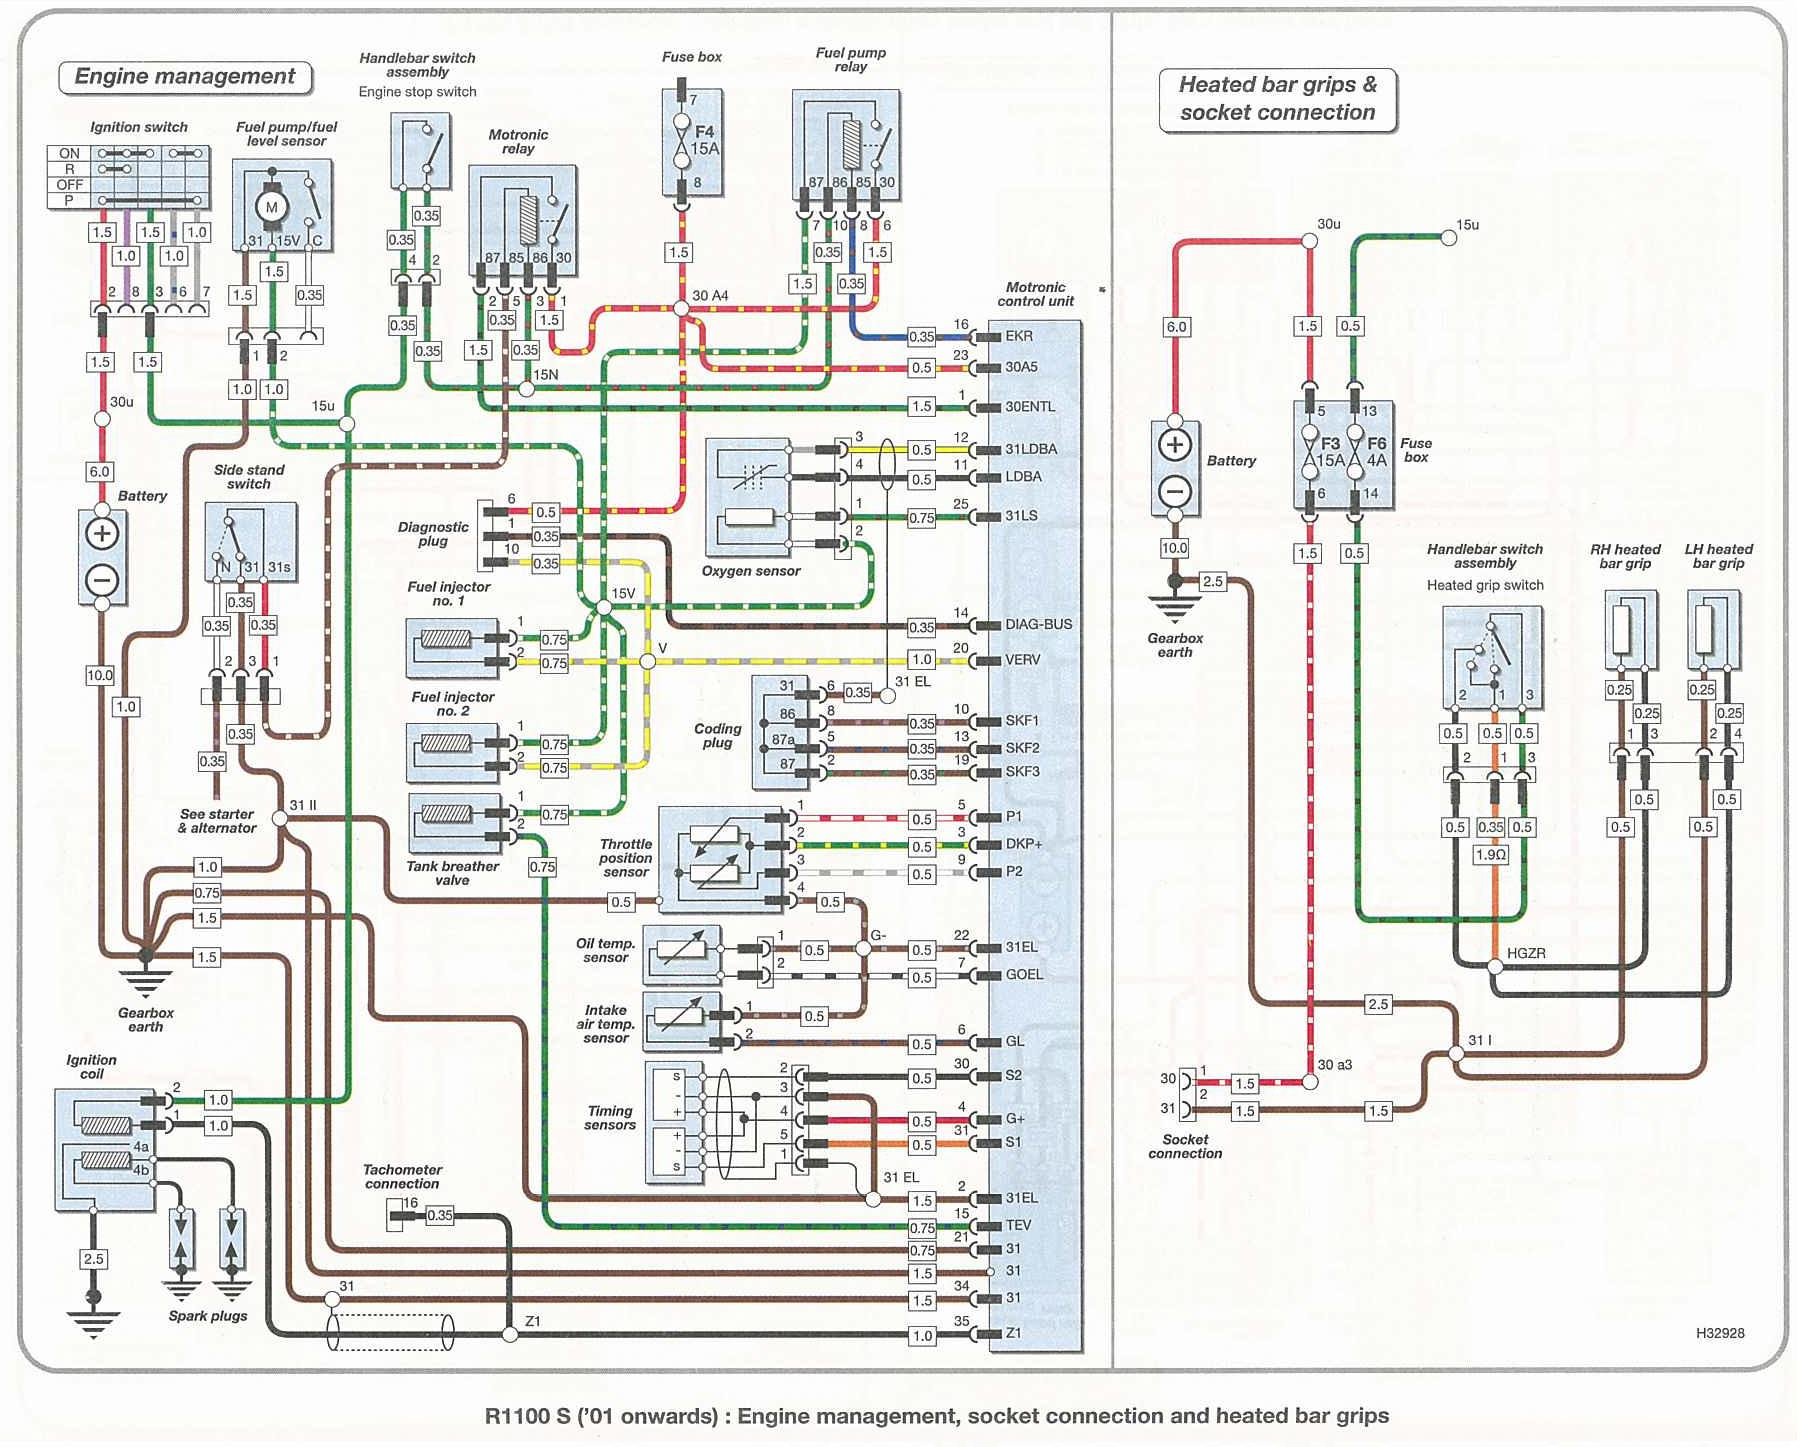 bmw r1100s wiring diagrams on Raptor 350 Wiring Diagram for dr350 wiring diagram #20 at suzuki dr350 wiring diagram